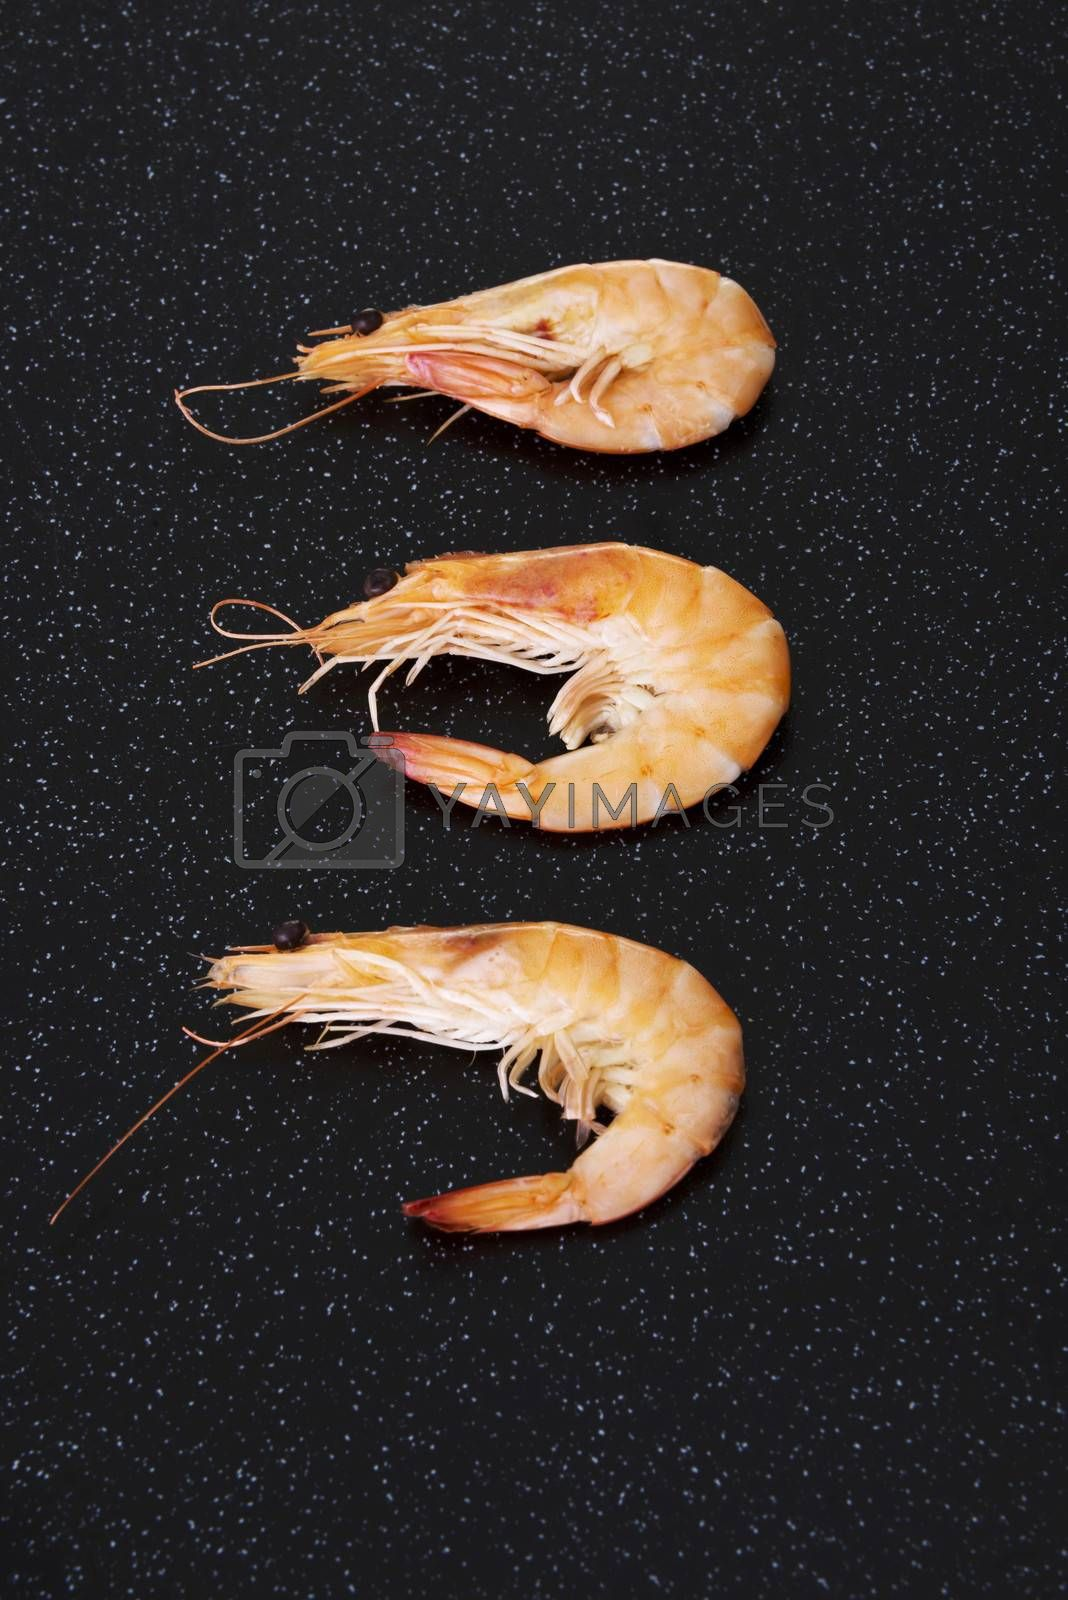 Royalty free image of Three separated shrimps lying on a kitchen table. by BDS